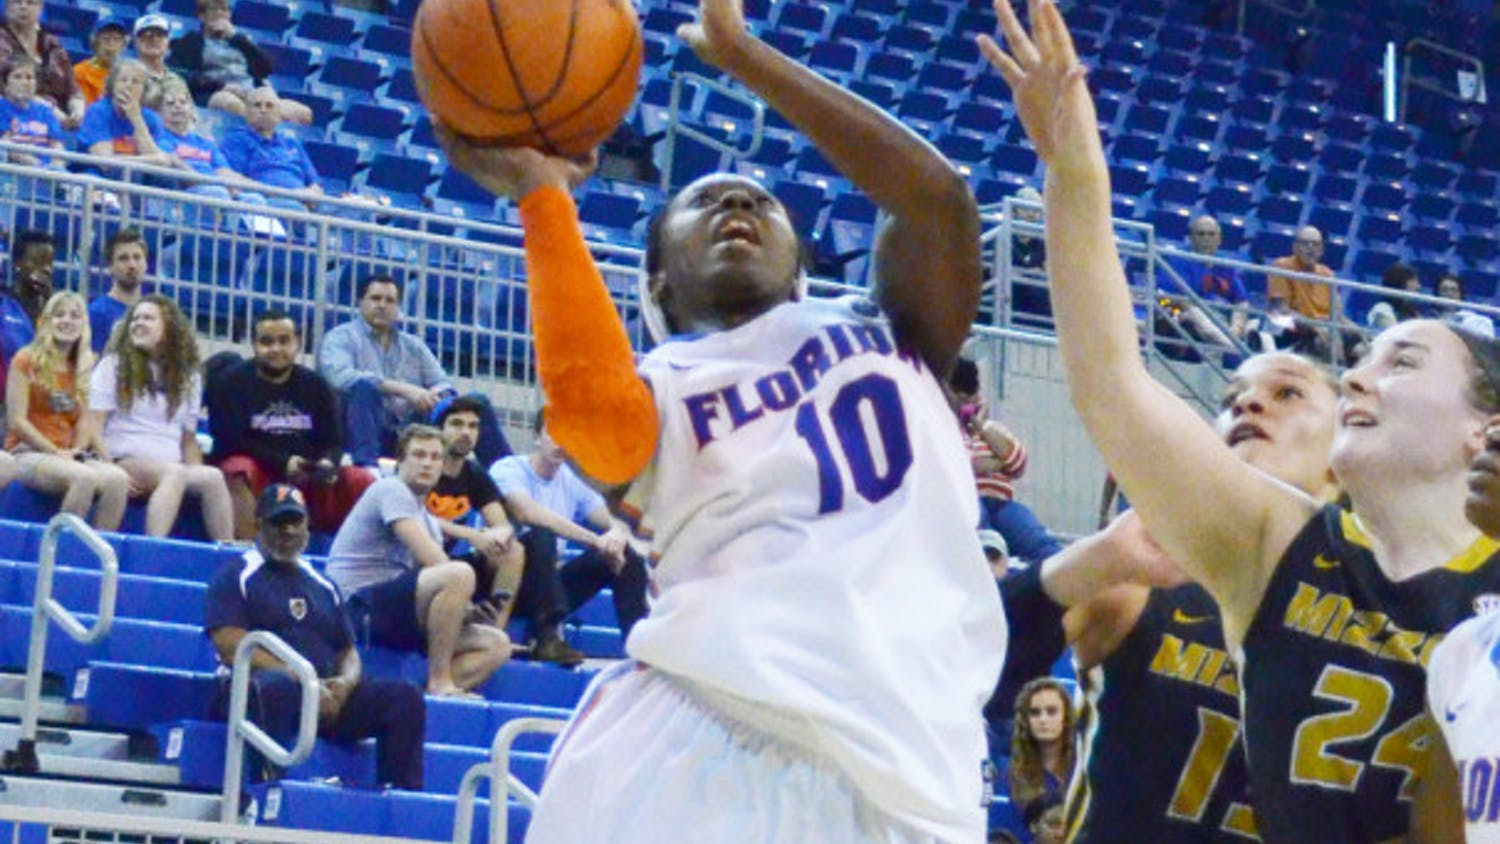 Jaterra Bonds attempts a shot during Florida's 81-76 loss against Missouri on Thursday in the O'Connell Center.